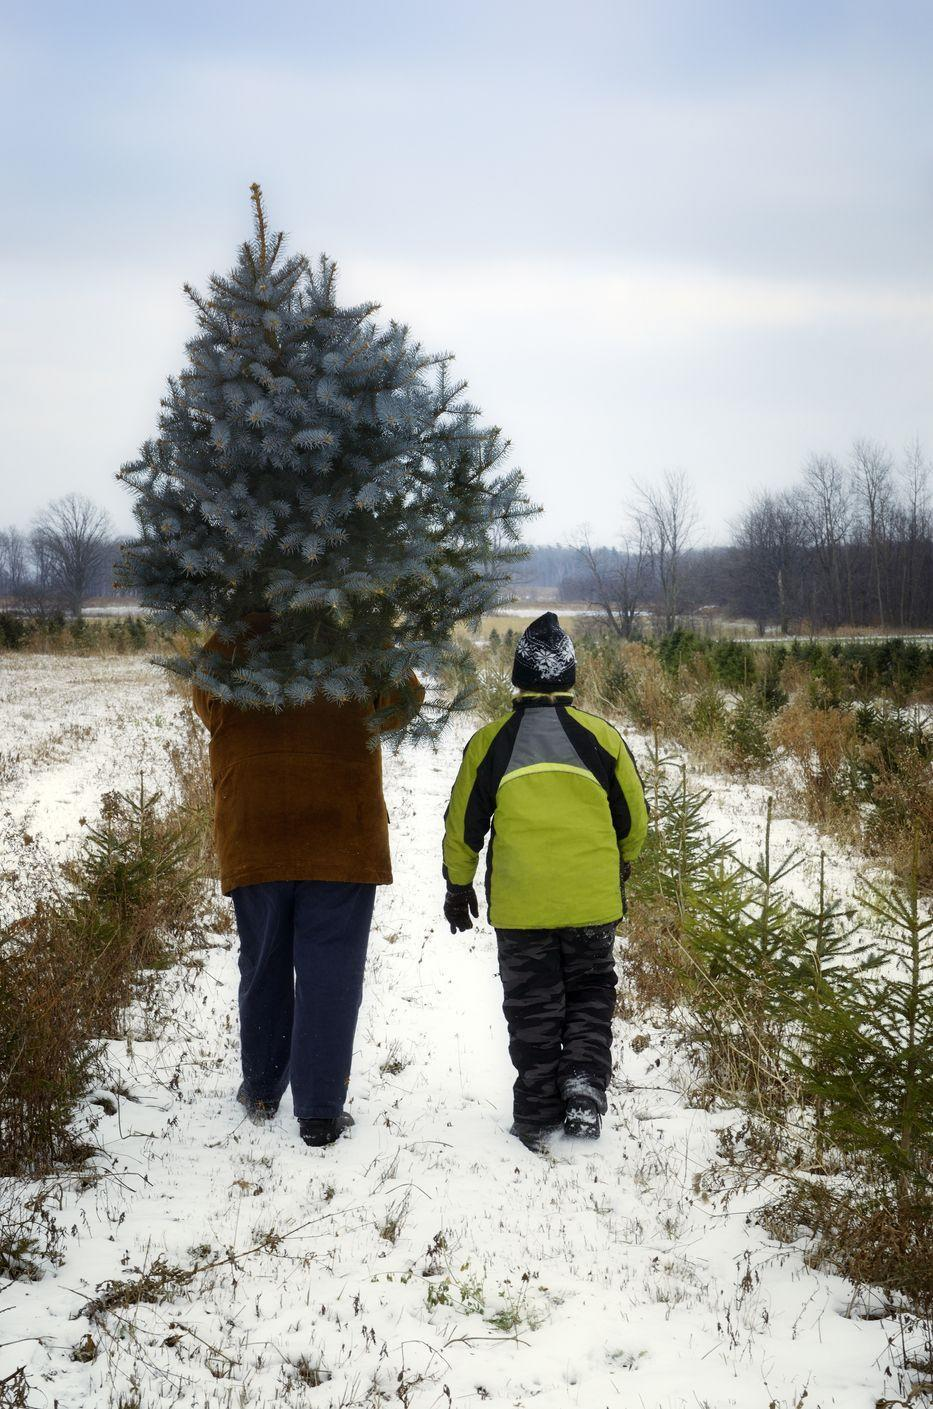 """<p><strong>Raymond, Main</strong><strong>e</strong> (Starting November 29)</p><p>Head into the forest and determine which tree is the right one for you and your family at <a href=""""https://balsamridgechristmas.com/index.php/events"""" rel=""""nofollow noopener"""" target=""""_blank"""" data-ylk=""""slk:Balsam Ridge Christmas Tree Farm"""" class=""""link rapid-noclick-resp""""><strong>Balsam Ridge Christmas Tree Farm</strong></a>. Kids will love hanging out with farm animals and roasting marshmallows at their fire pit, and Santa stops by on December 1 and 2. What will keep you coming back for more is the farm's maple products, which are available year-round. Don't leave without picking up some maple butter, maple cream, and of course, maple syrup. <br></p>"""